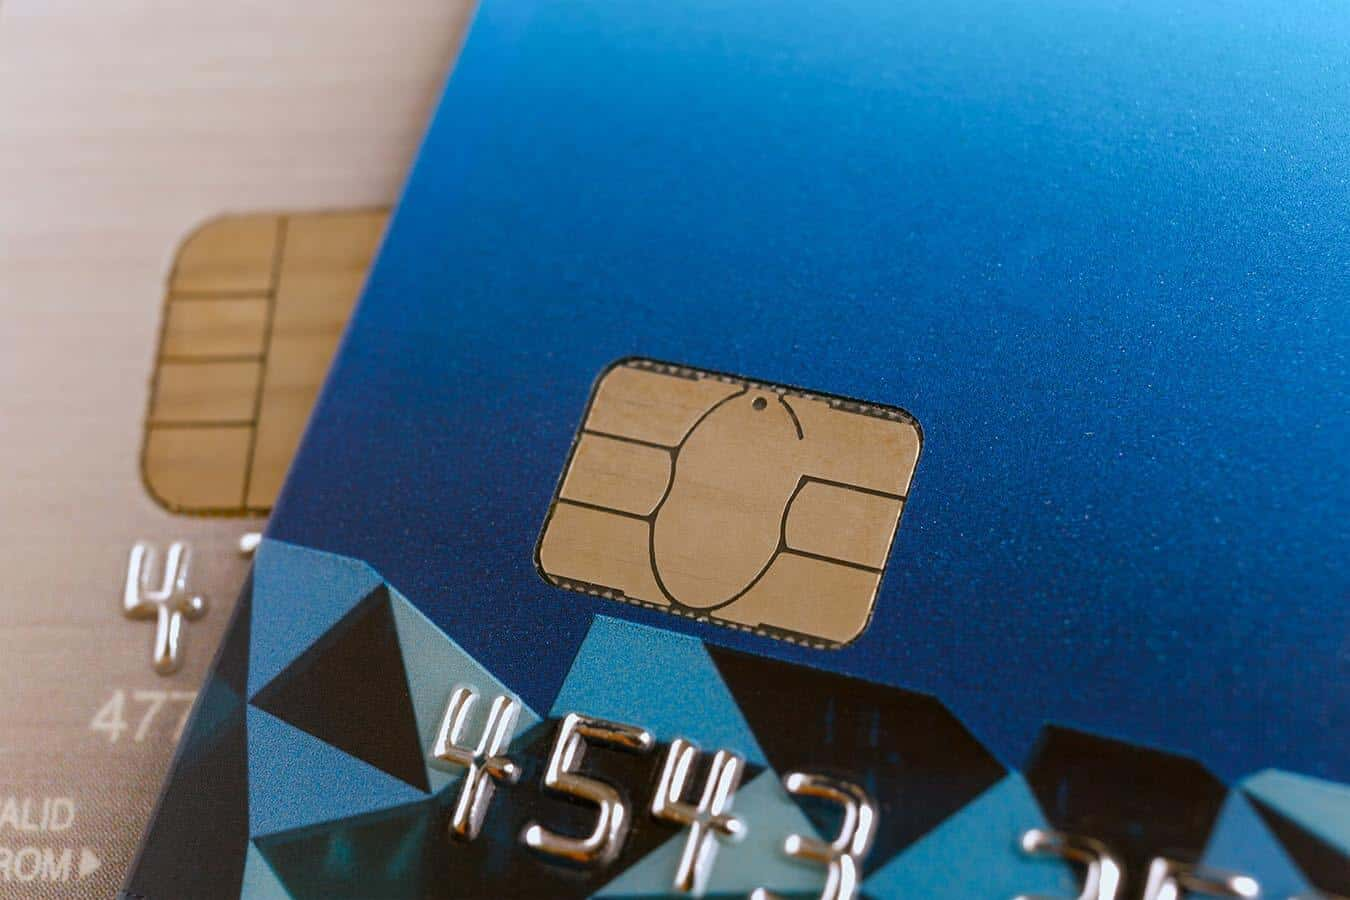 Is two-step authentication acceptable for PCI DSS Requirement 8.3?